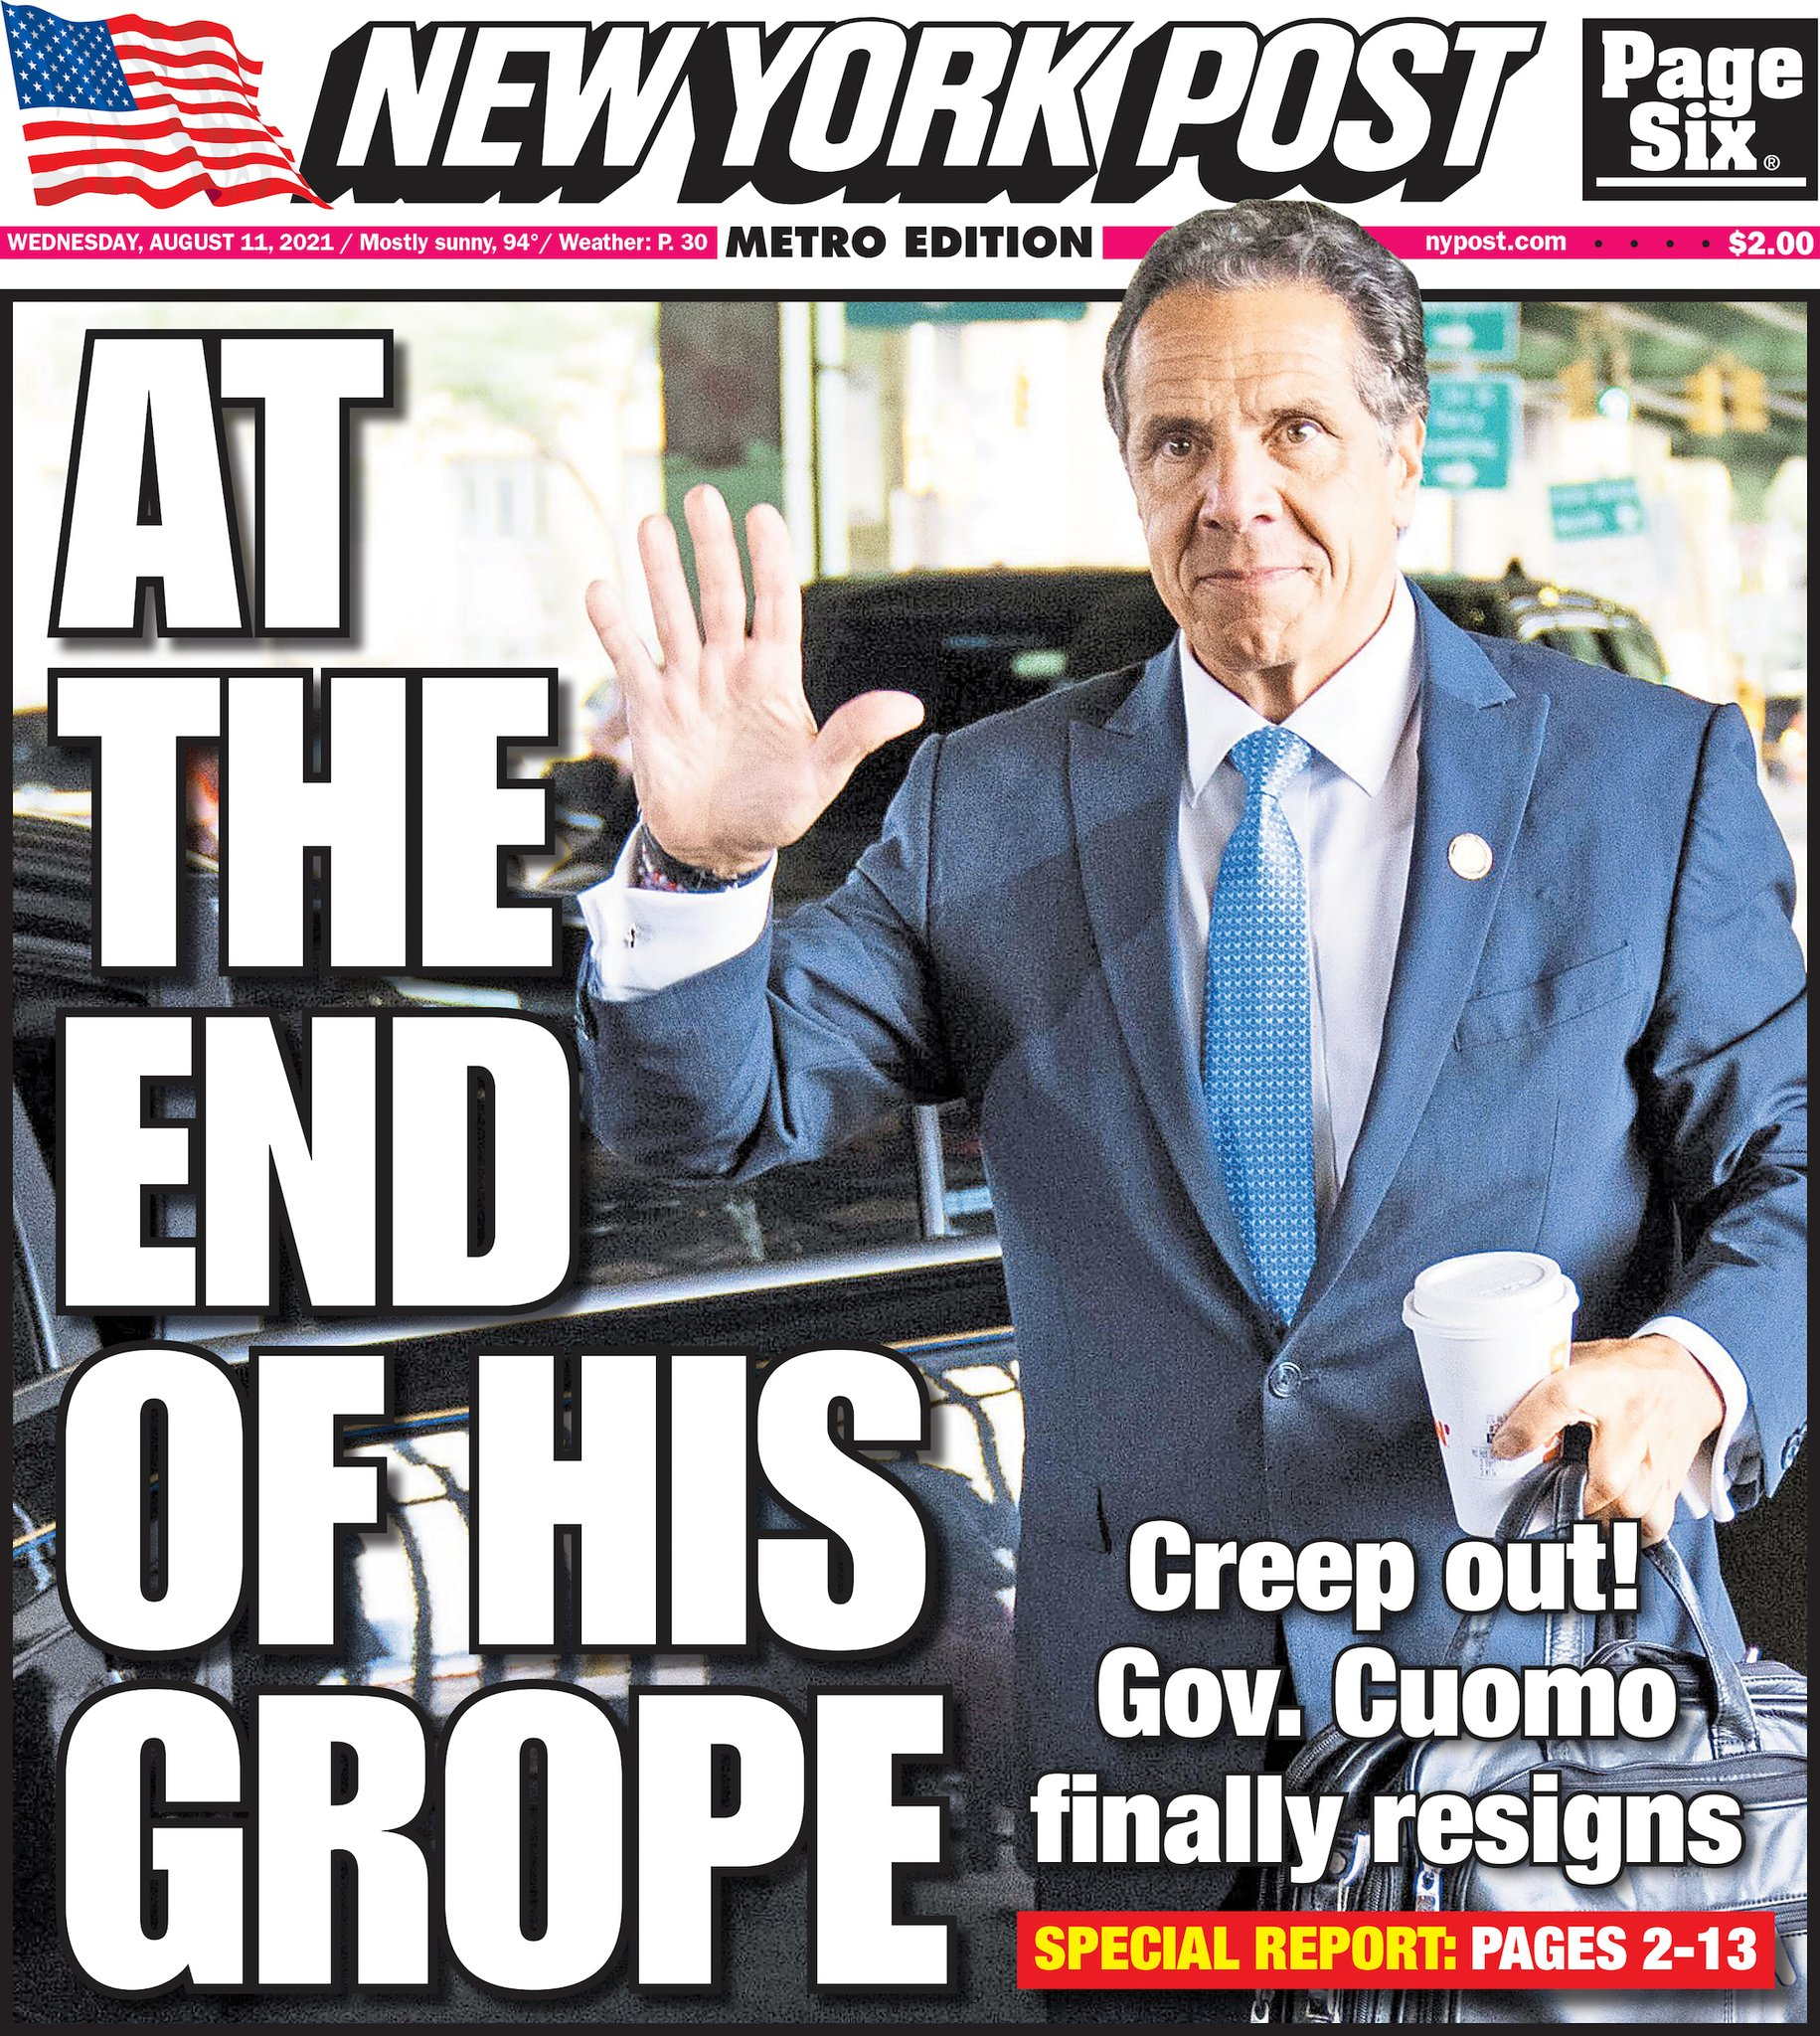 """New York Post on Twitter: """"Today's cover: At the end of his grope — Gov.  Cuomo finally resigns https://t.co/kxjNhSLAmb… """""""